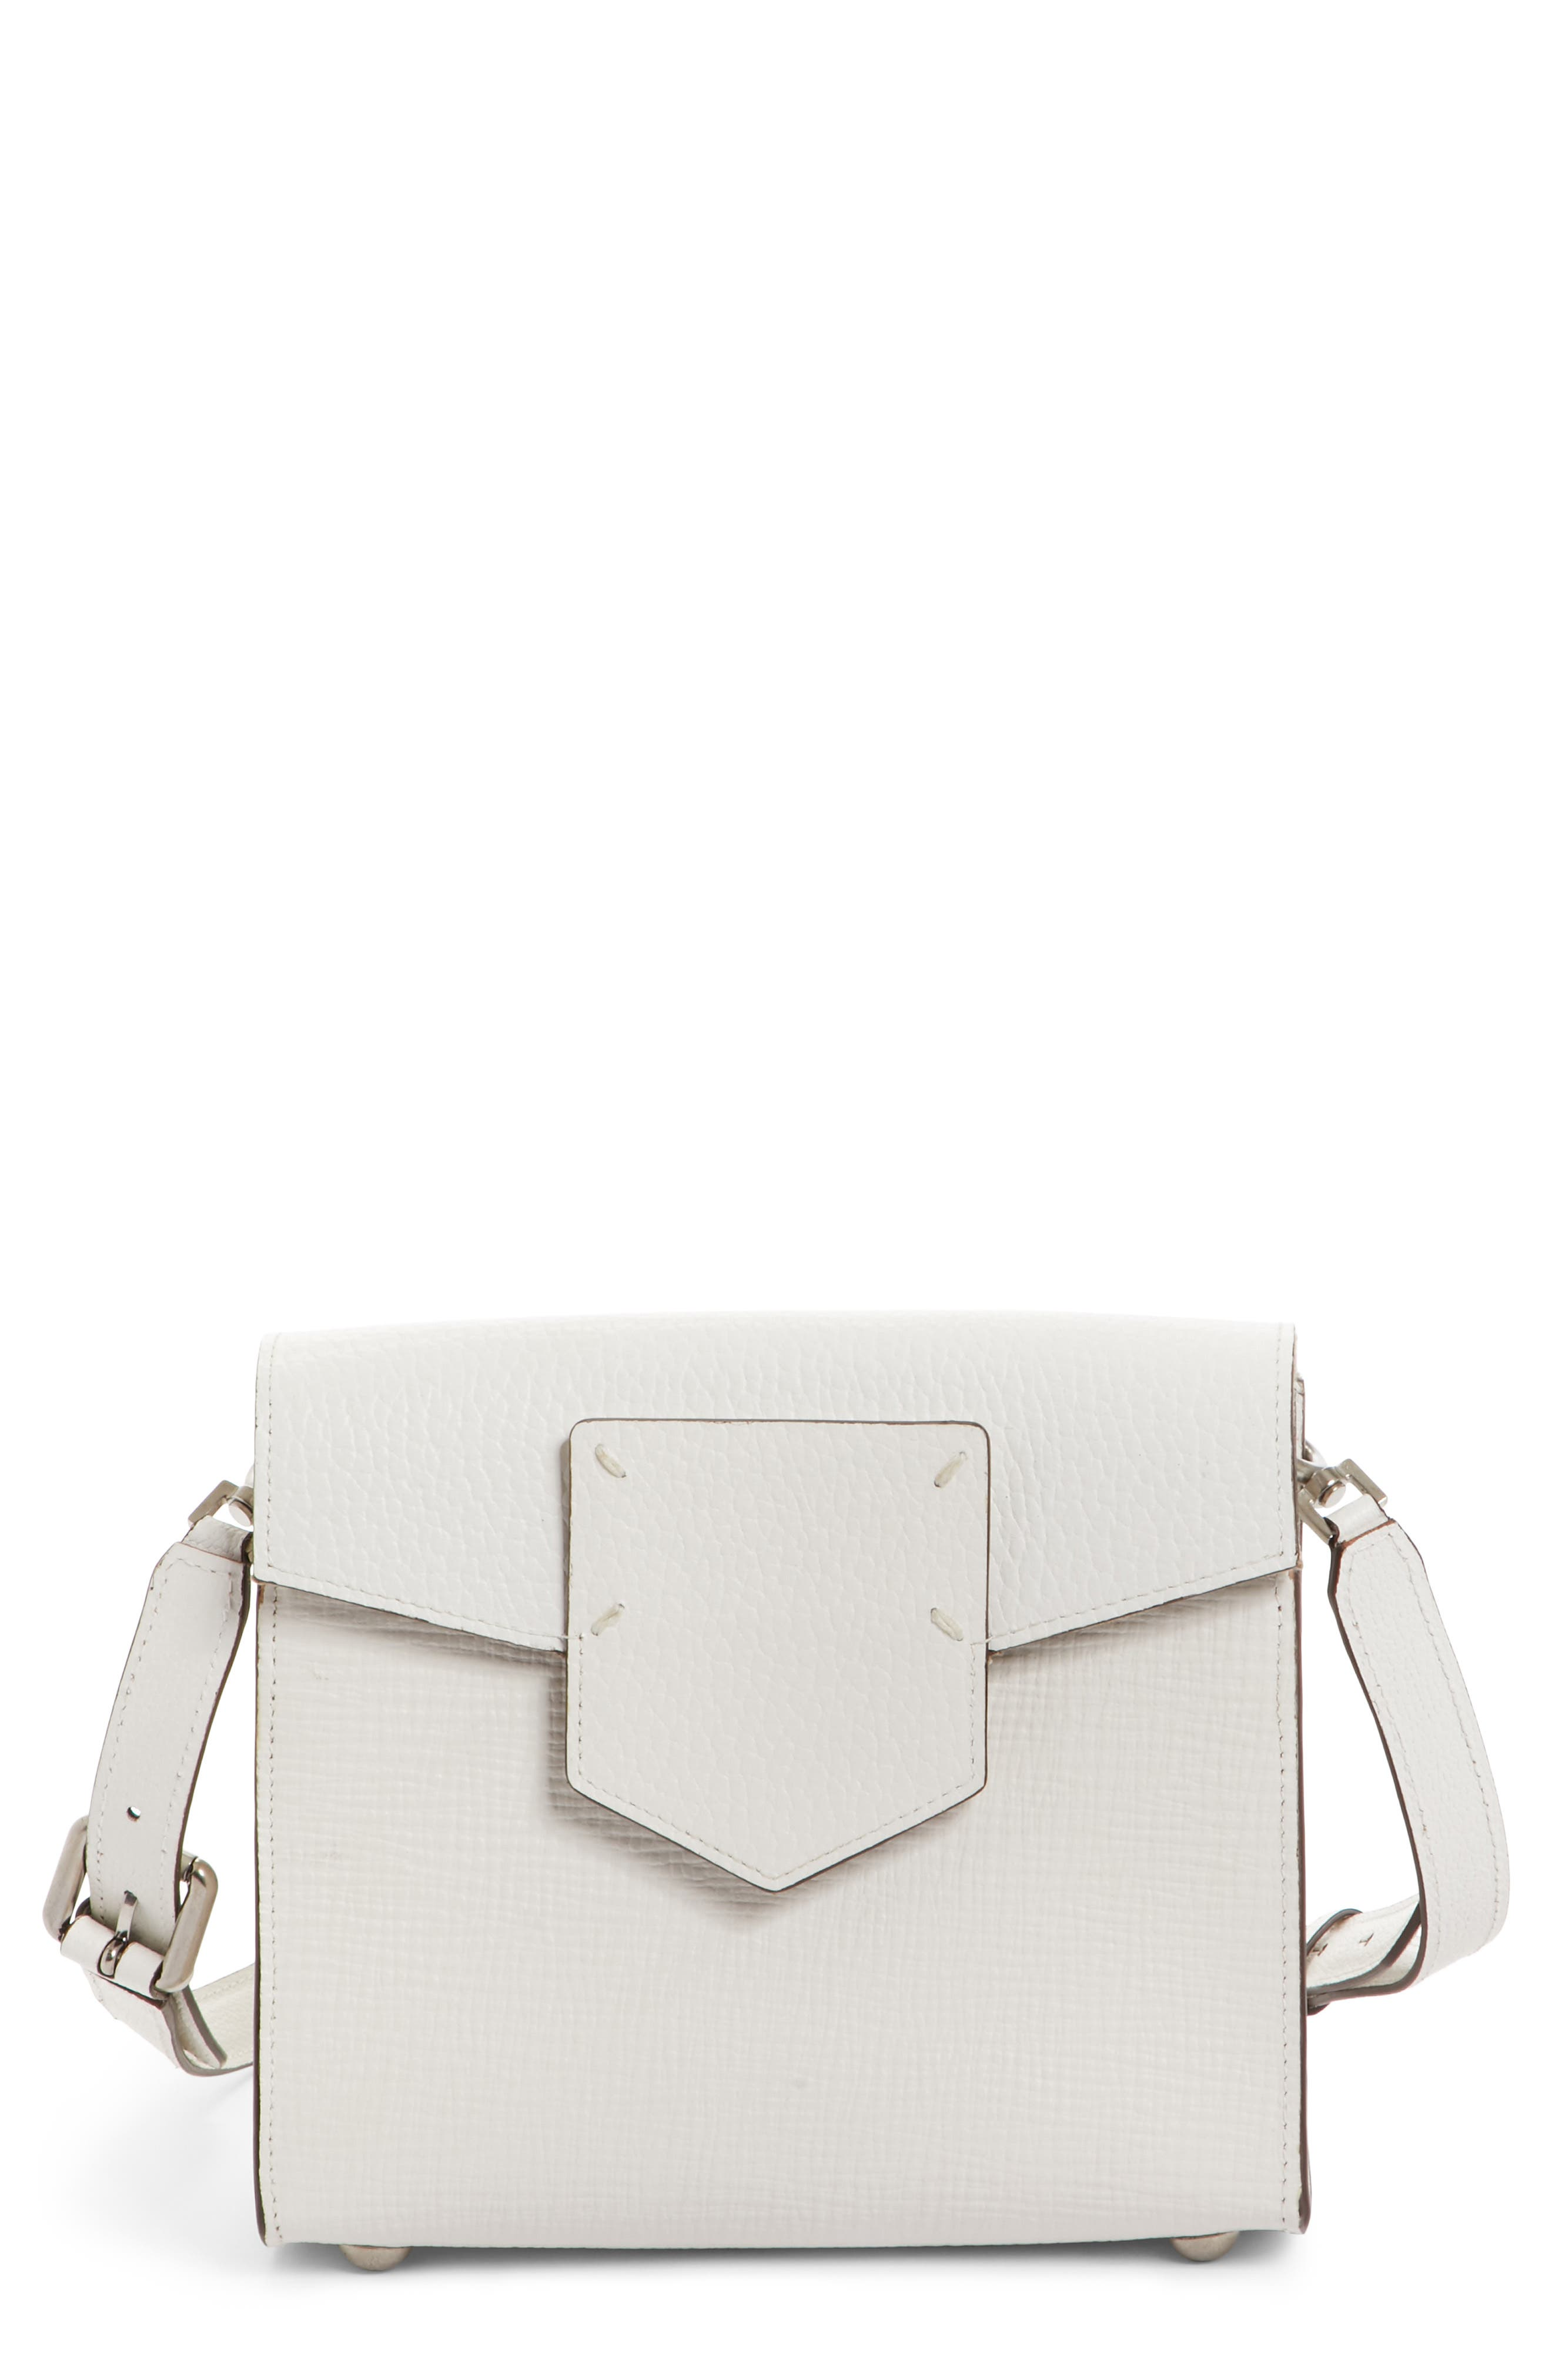 Bonded Leather Crossbody Bag,                             Main thumbnail 1, color,                             White